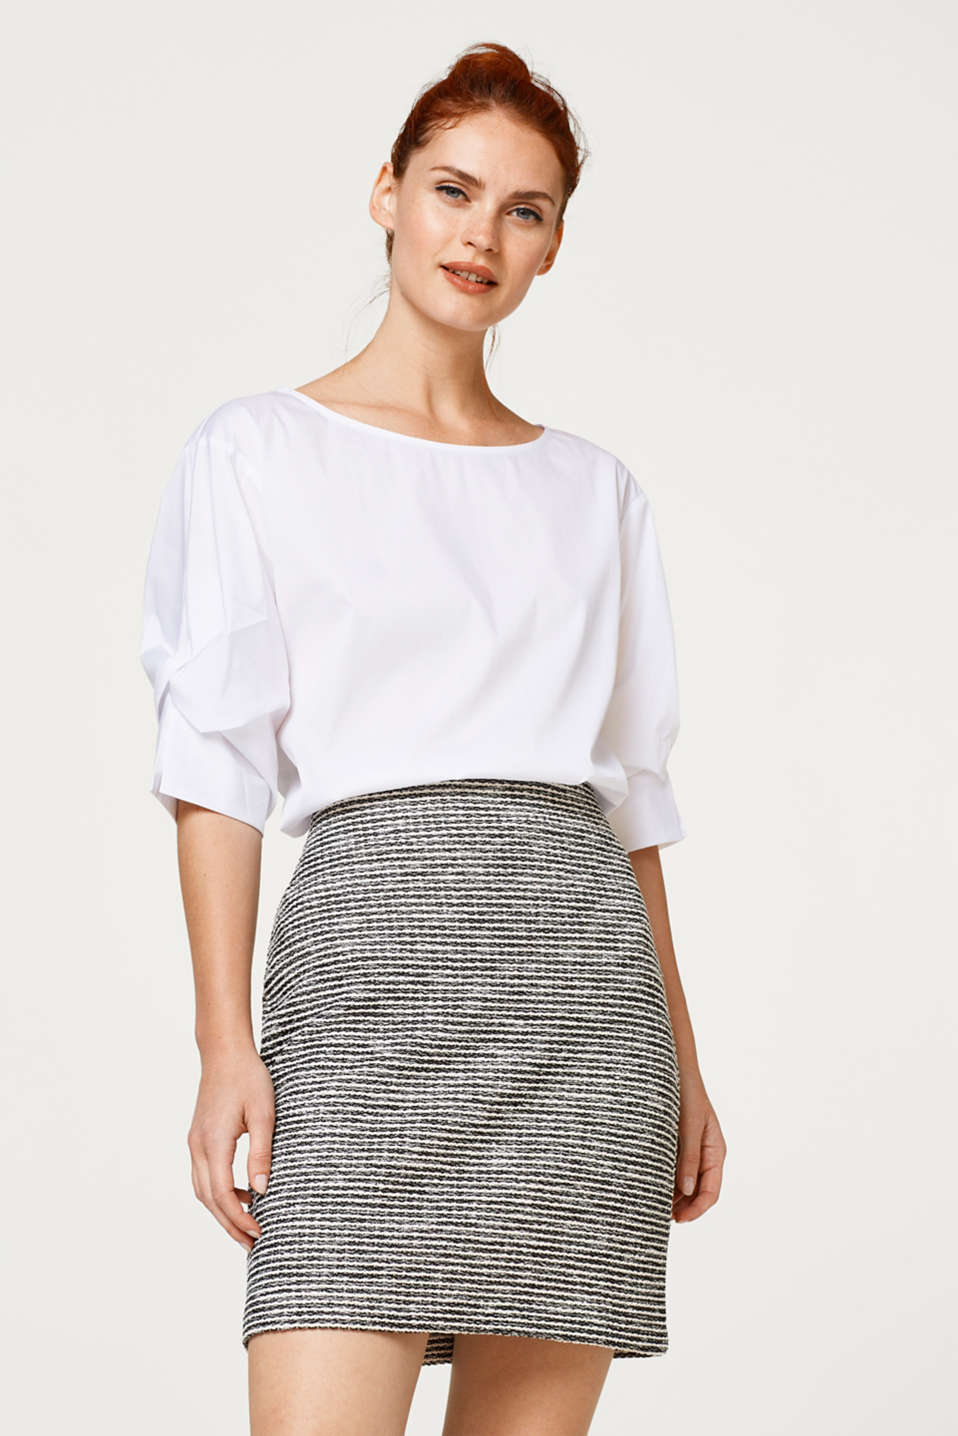 Esprit - Pencil skirt in textured jersey